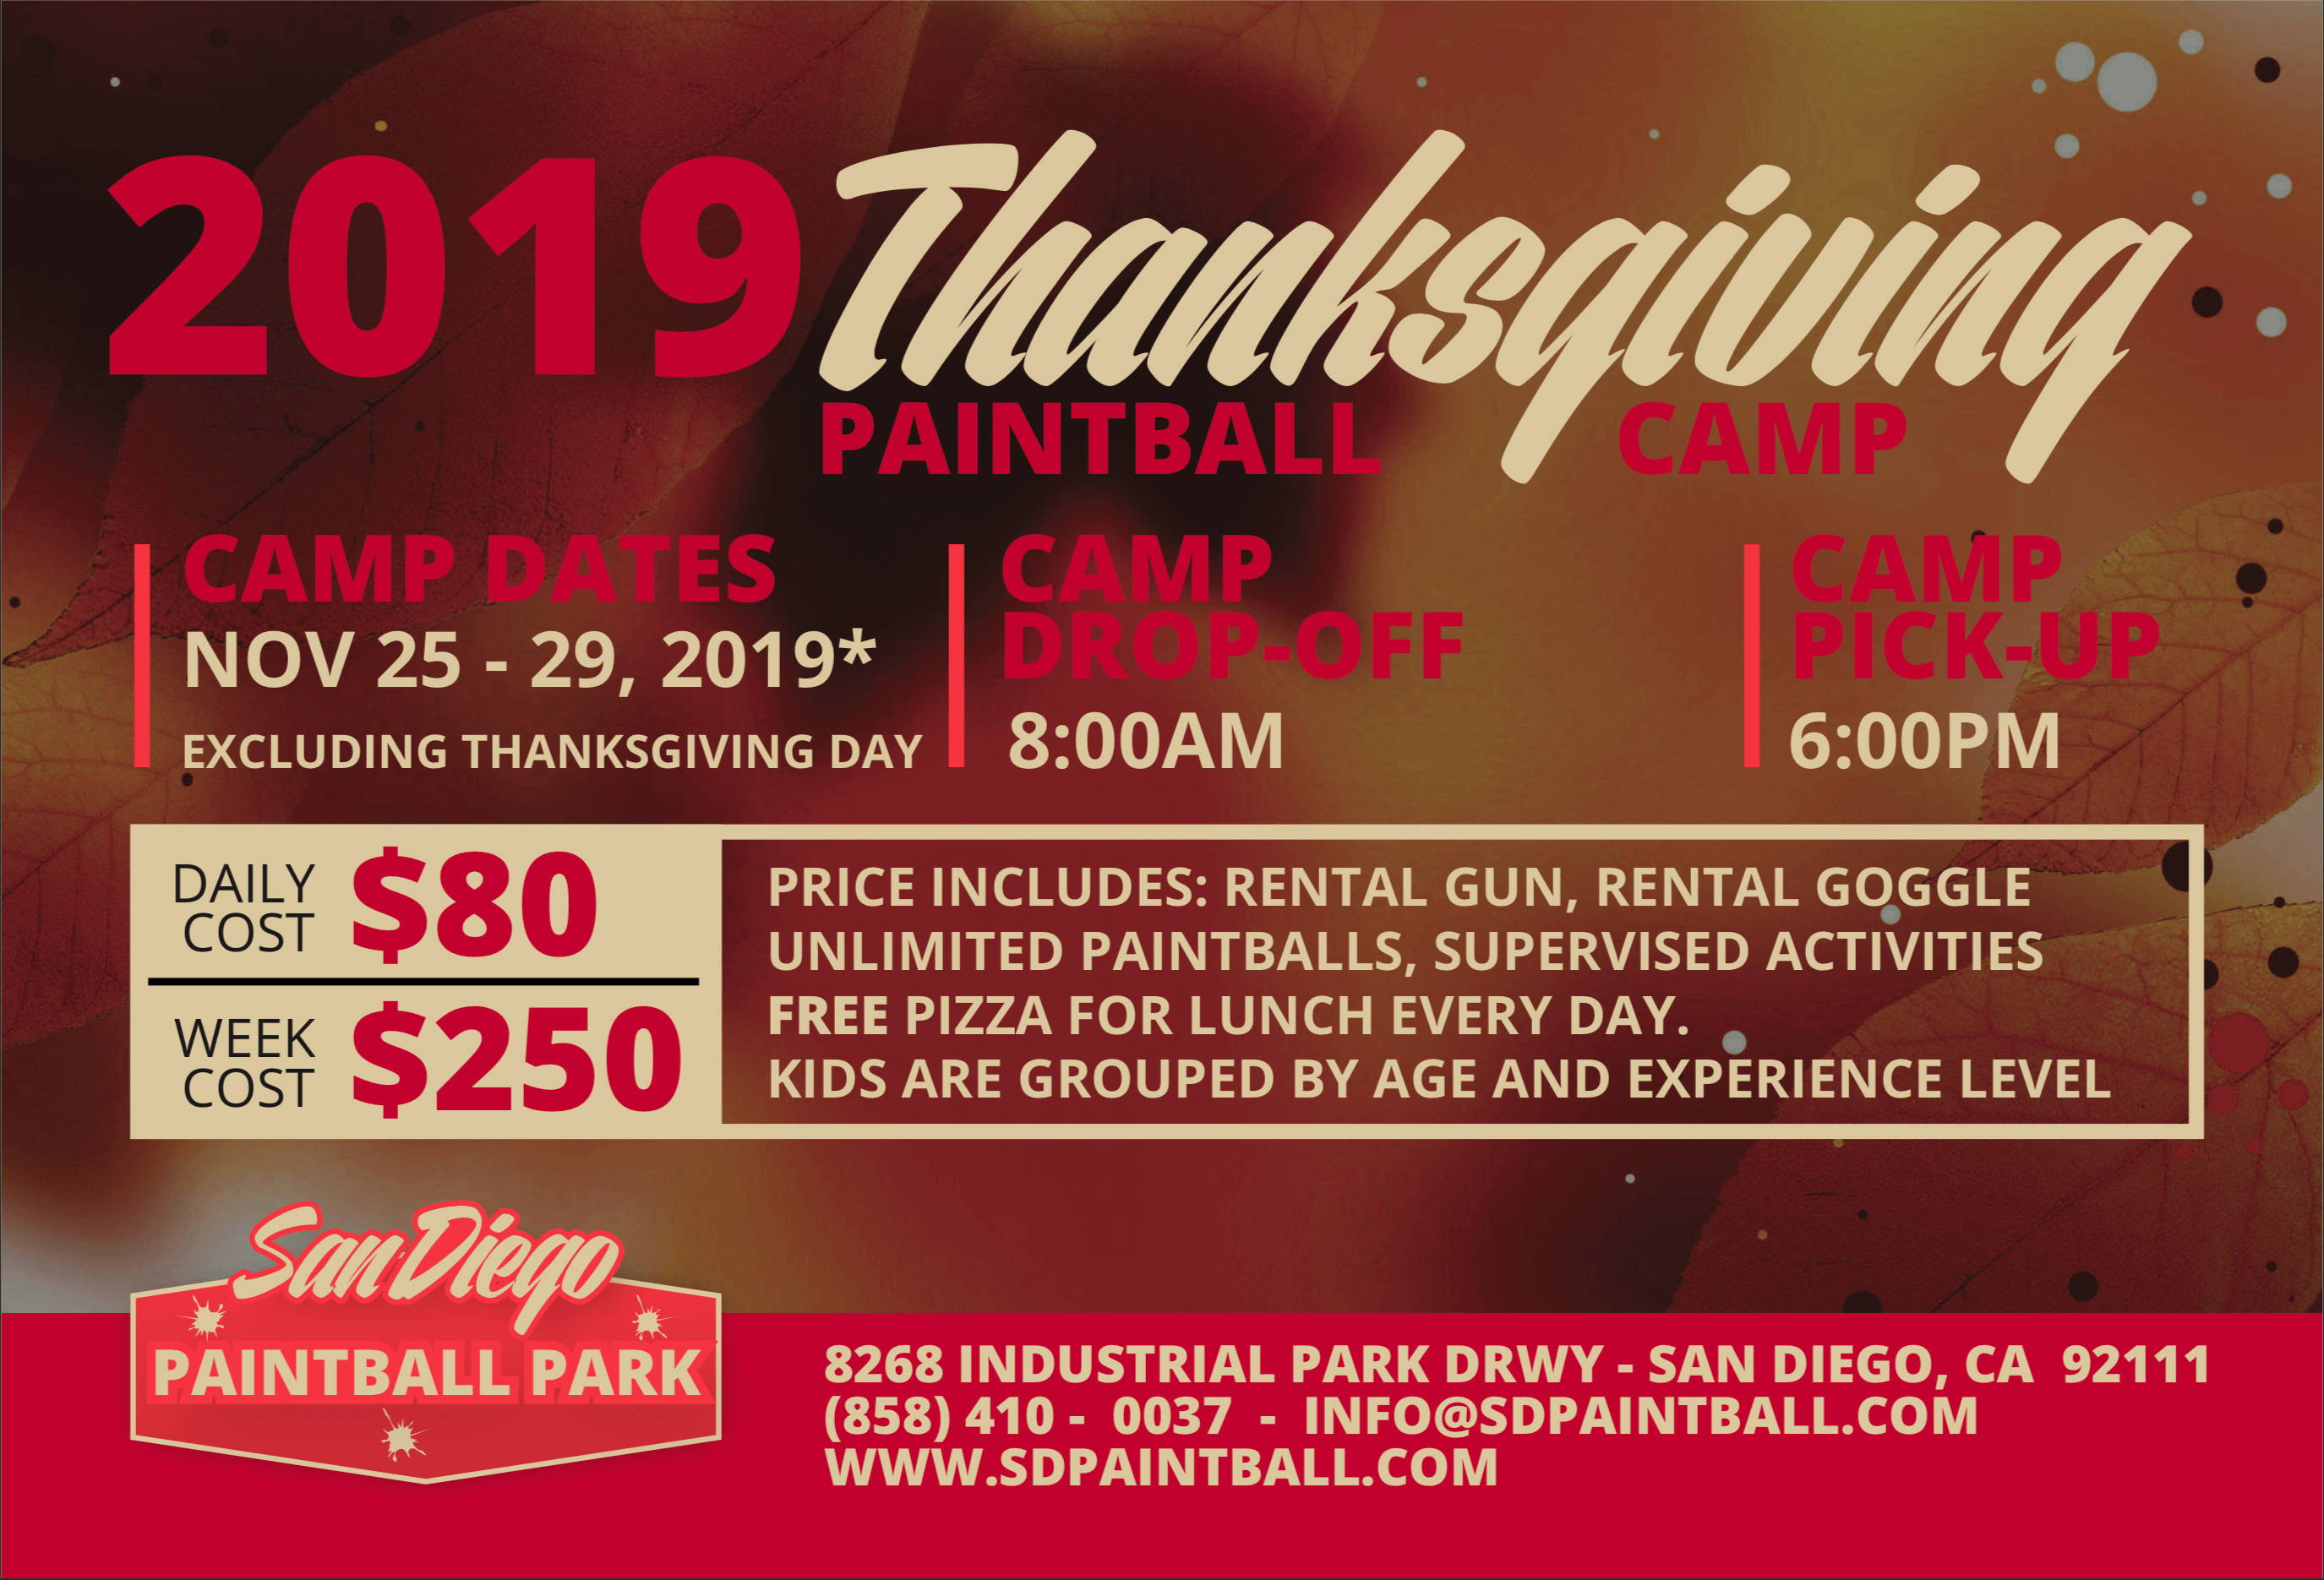 Thanksgiving Paintball Camp